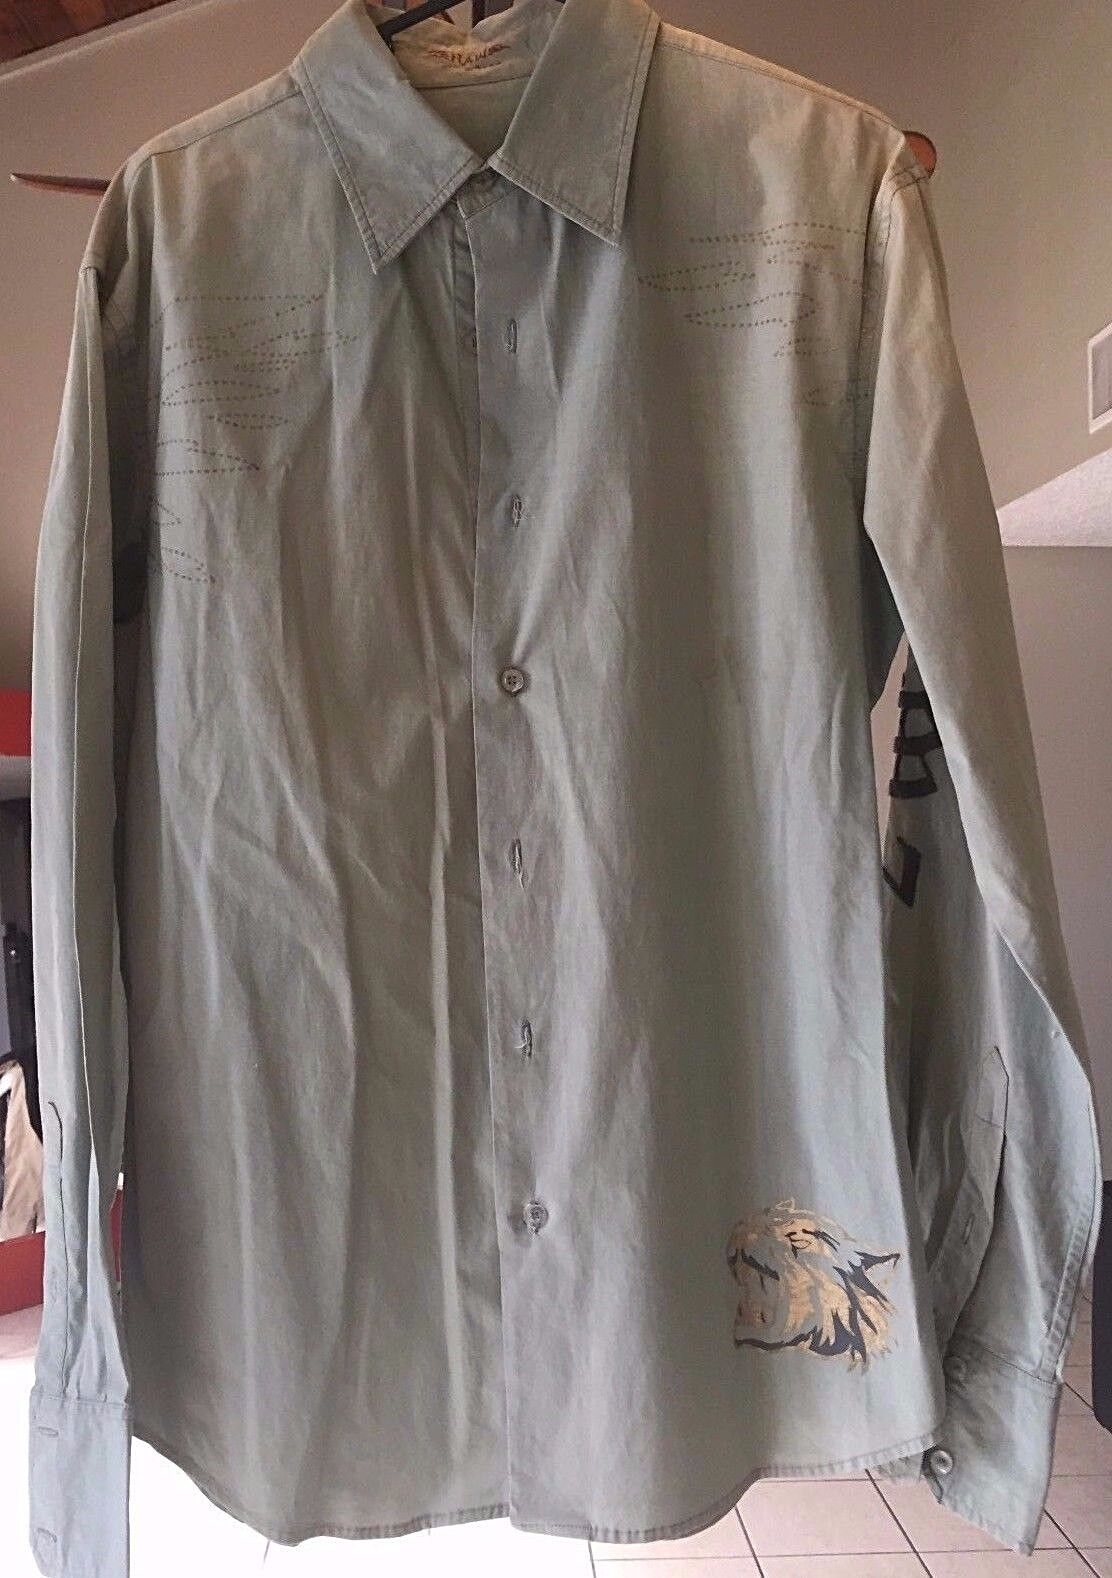 Raw 7 Men's Long Sleeve Button Front Shirt size M